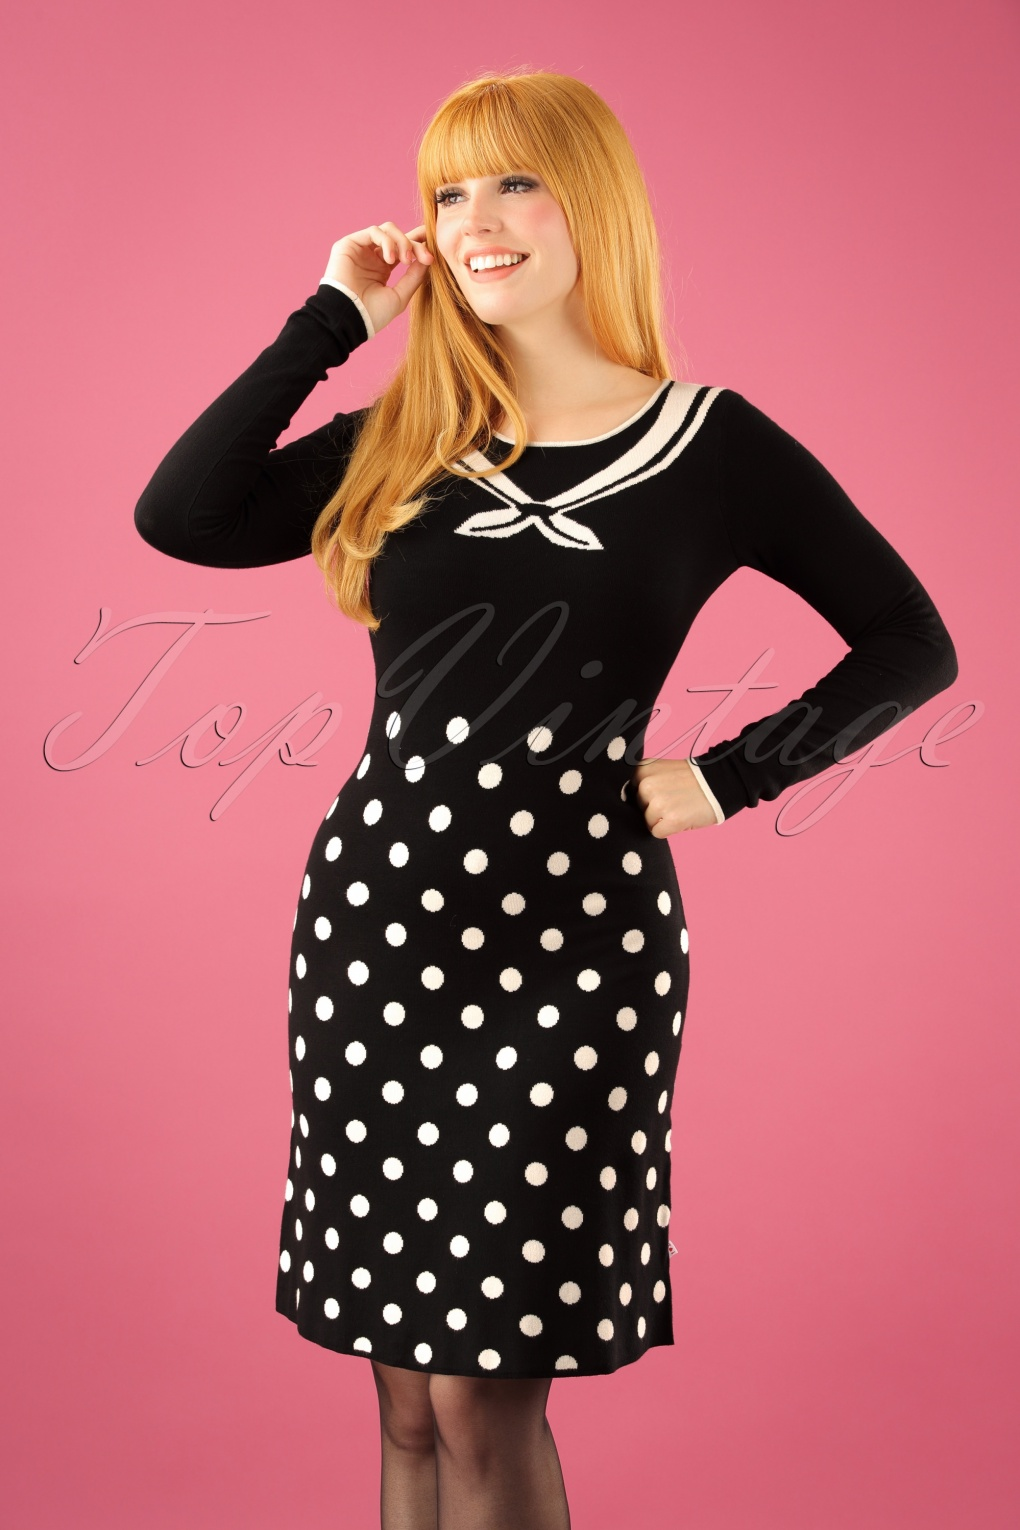 500 Vintage Style Dresses for Sale 60s Three Wishes Dress in Pearls of Snow Black £88.94 AT vintagedancer.com